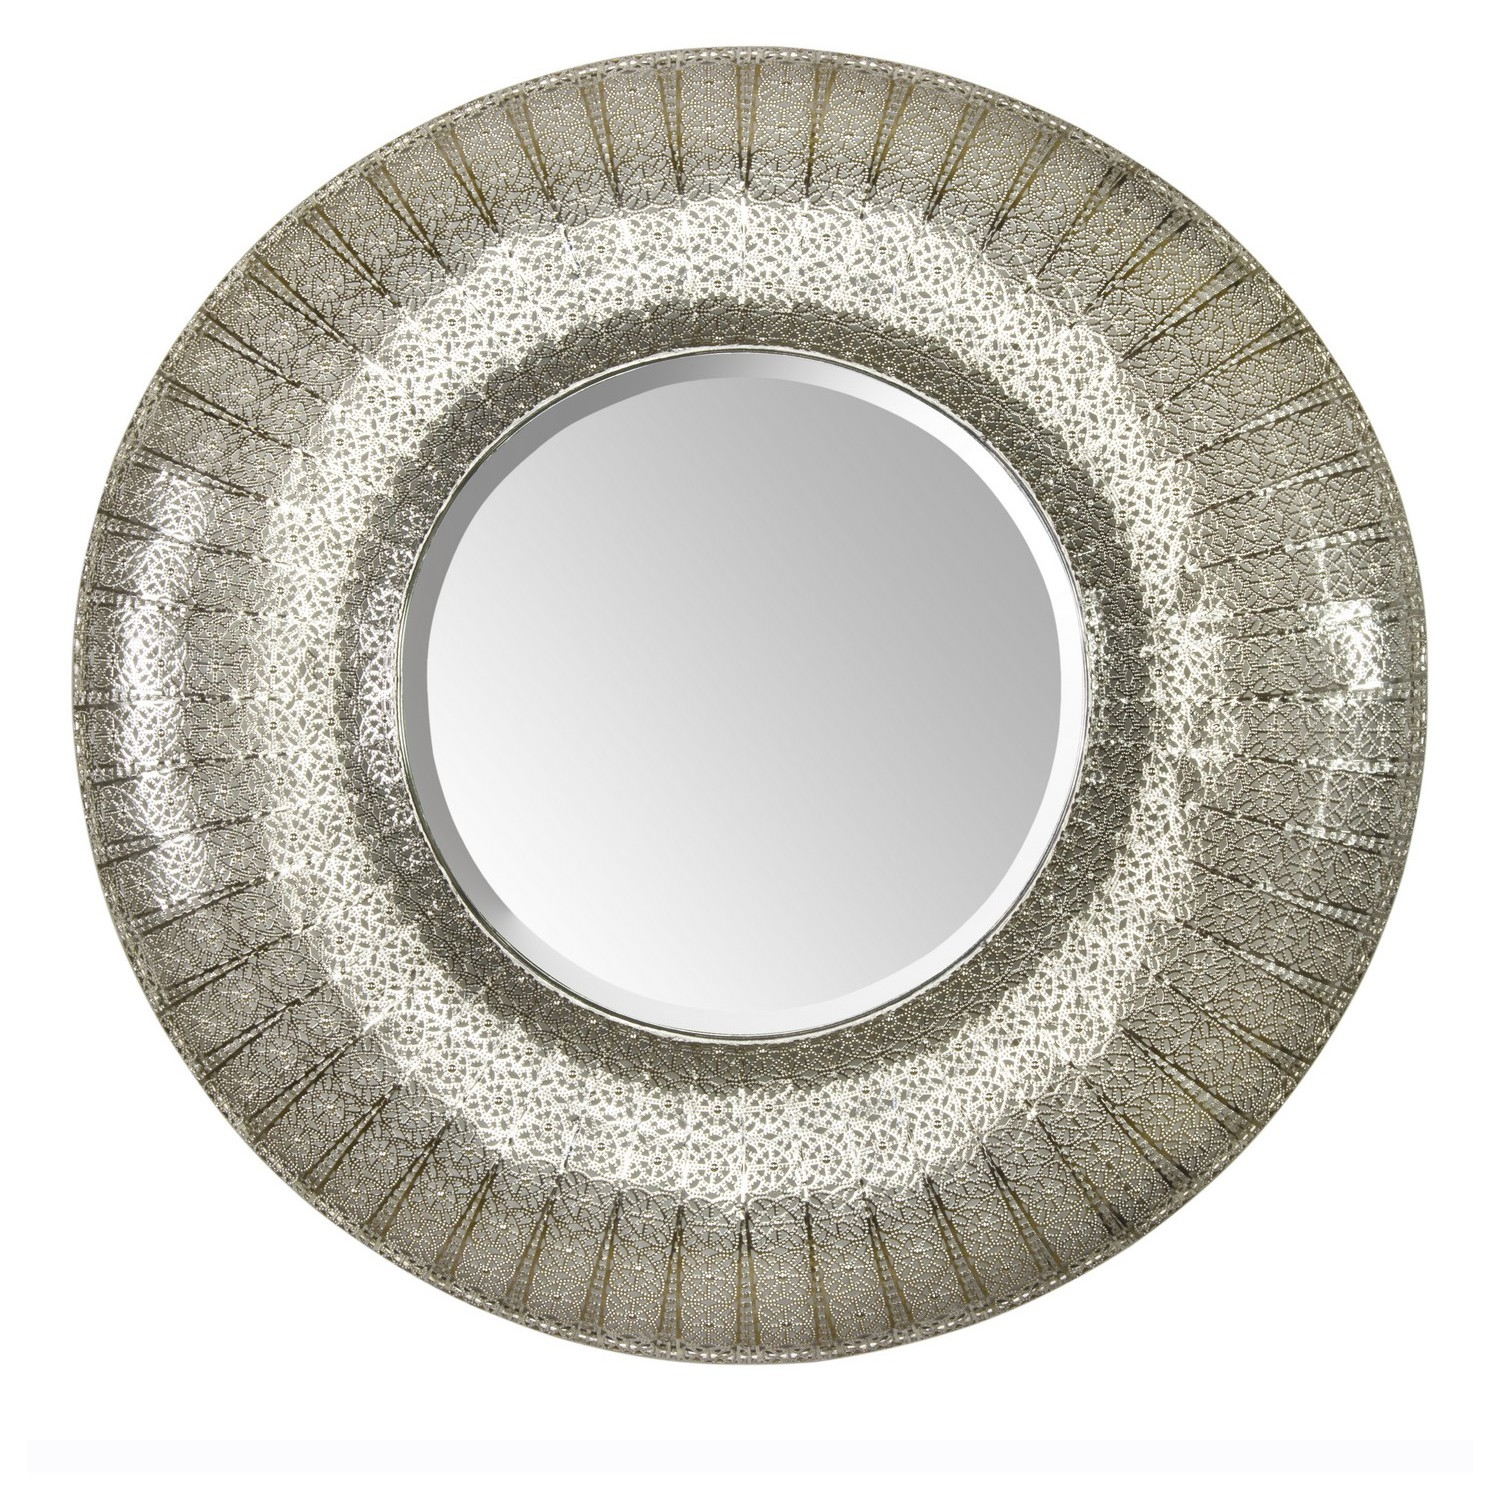 Round Moroccan Mirror The Round One In Silver 5499 Actual Intended For Large Round Metal Mirror (View 3 of 15)